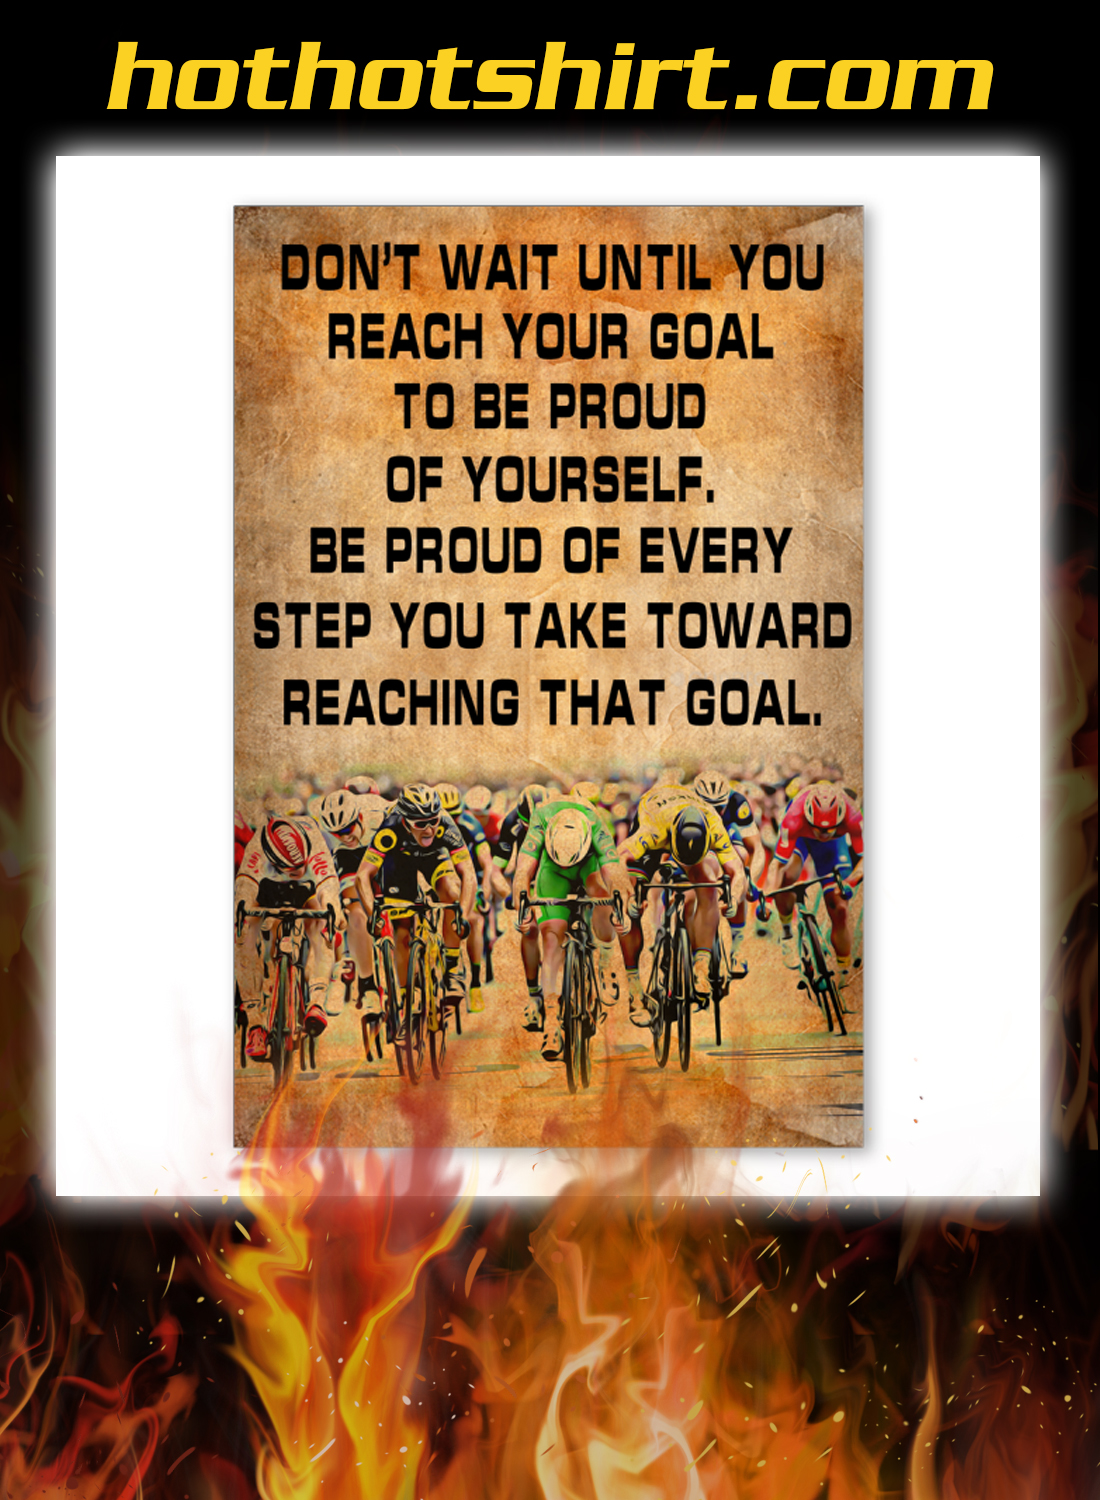 Bicycle Don't wait until you reach your goal to be proud of yourself poster 3